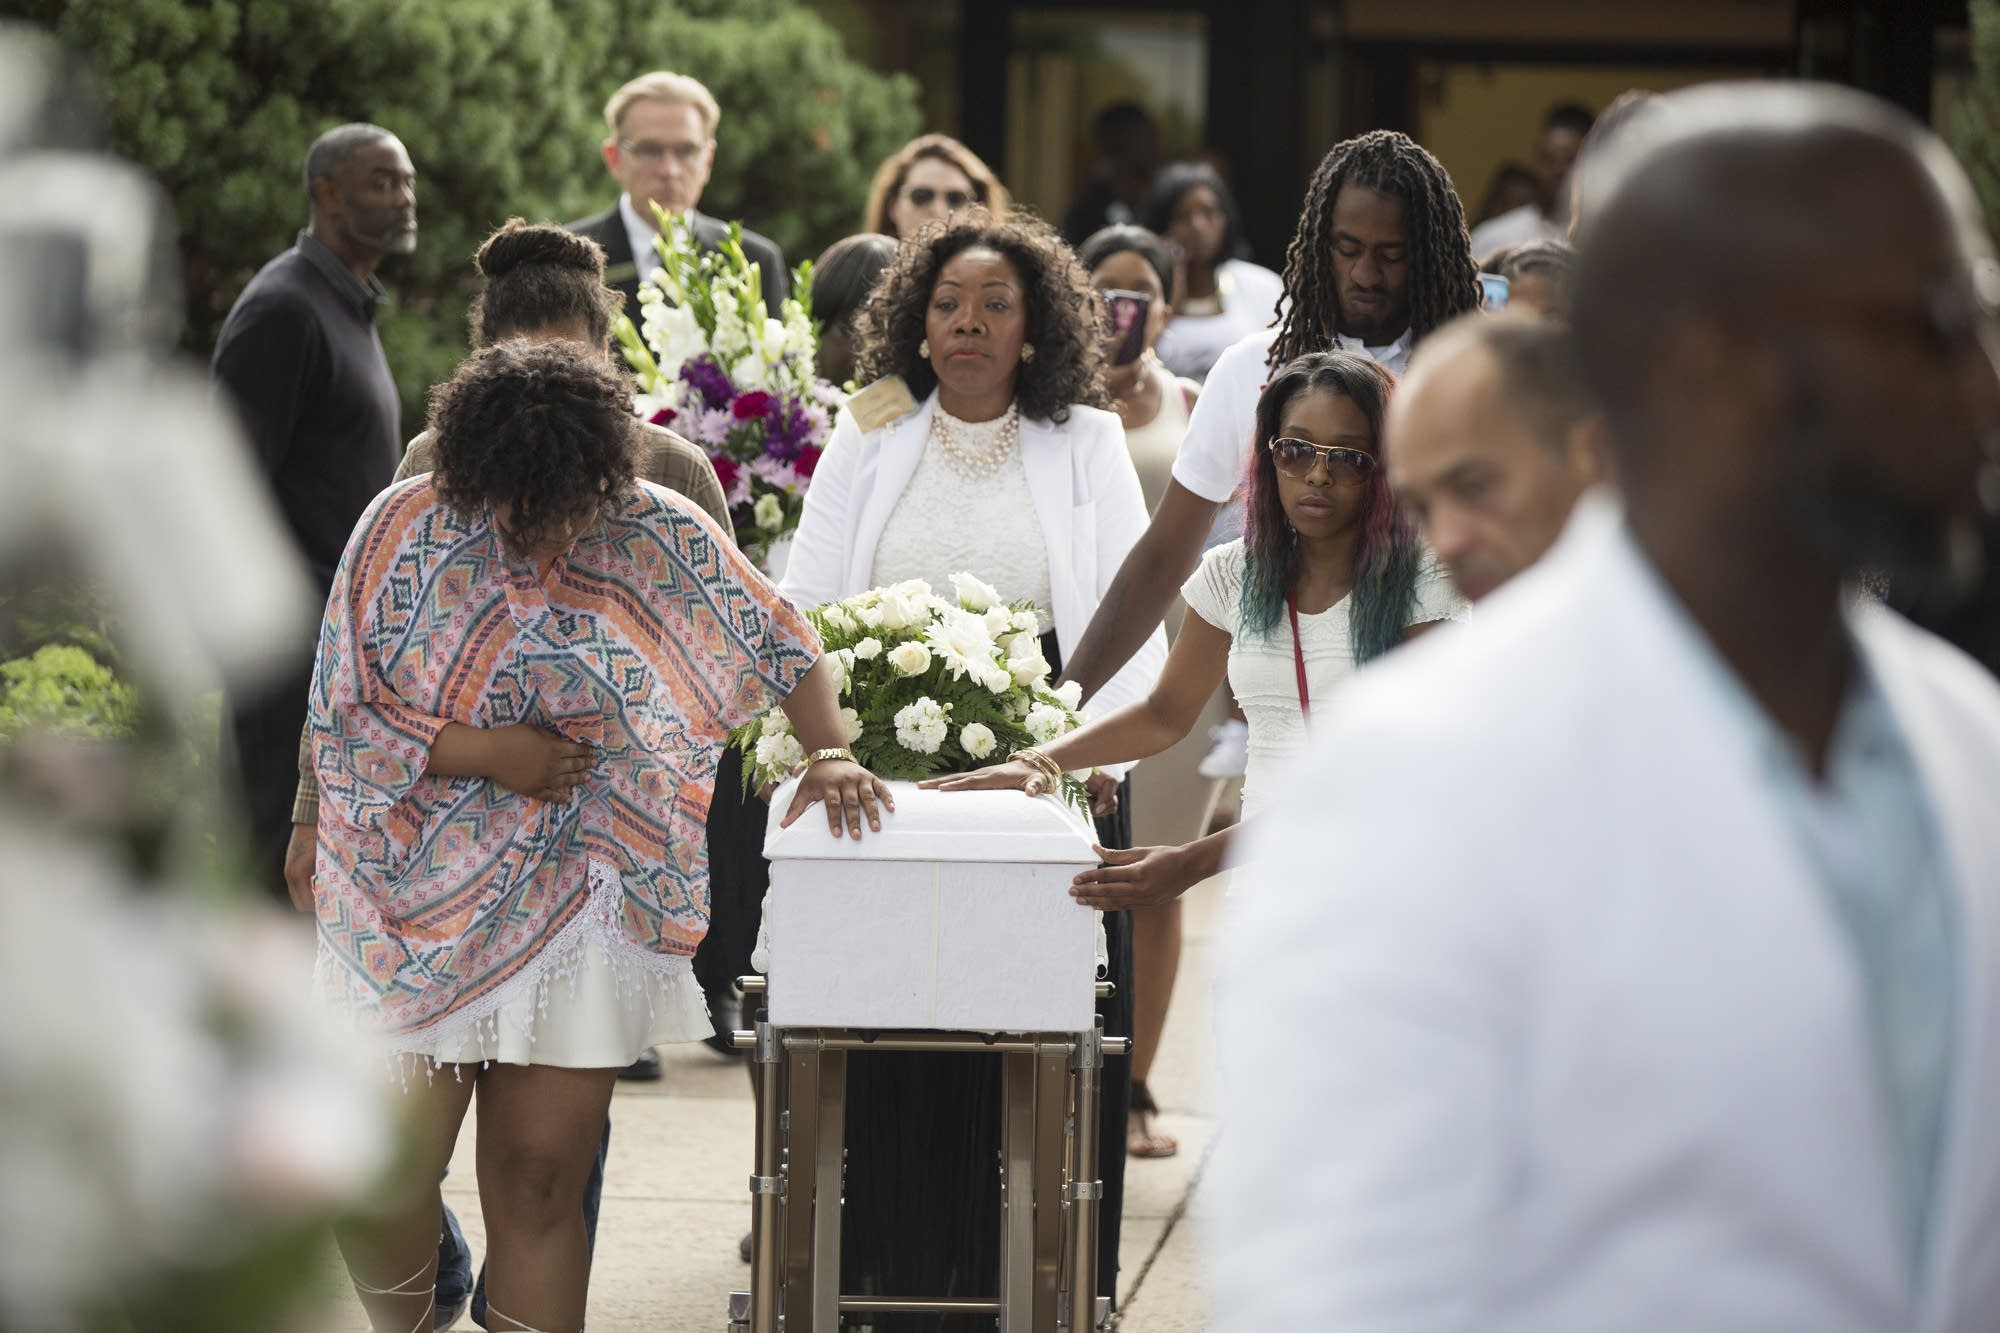 Family bring in Le'Vonte King Jason Jones' casket